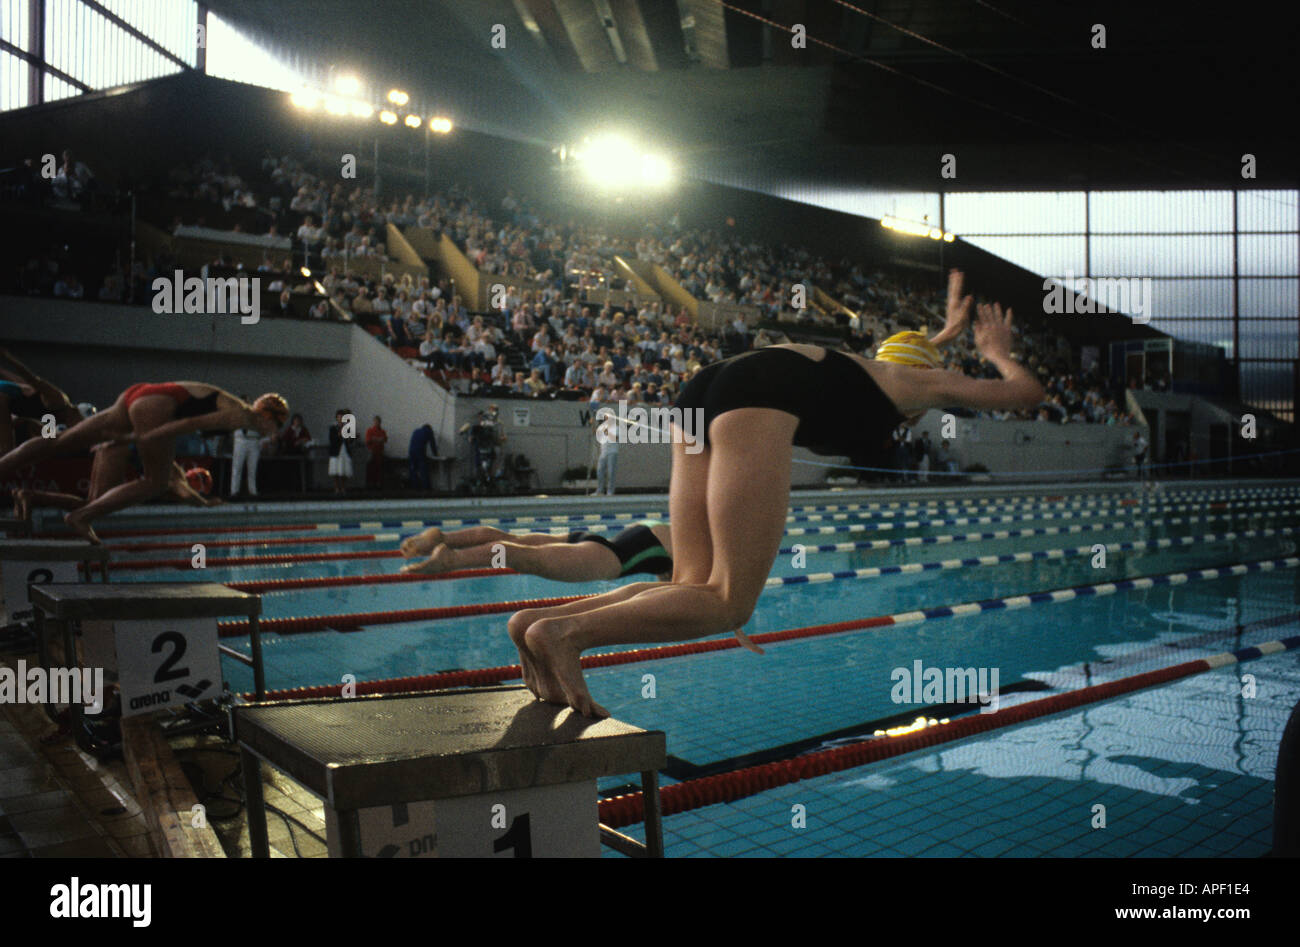 Women diving into swimming pool at start of race at leeds stock photo royalty free image for Leeds international swimming pool